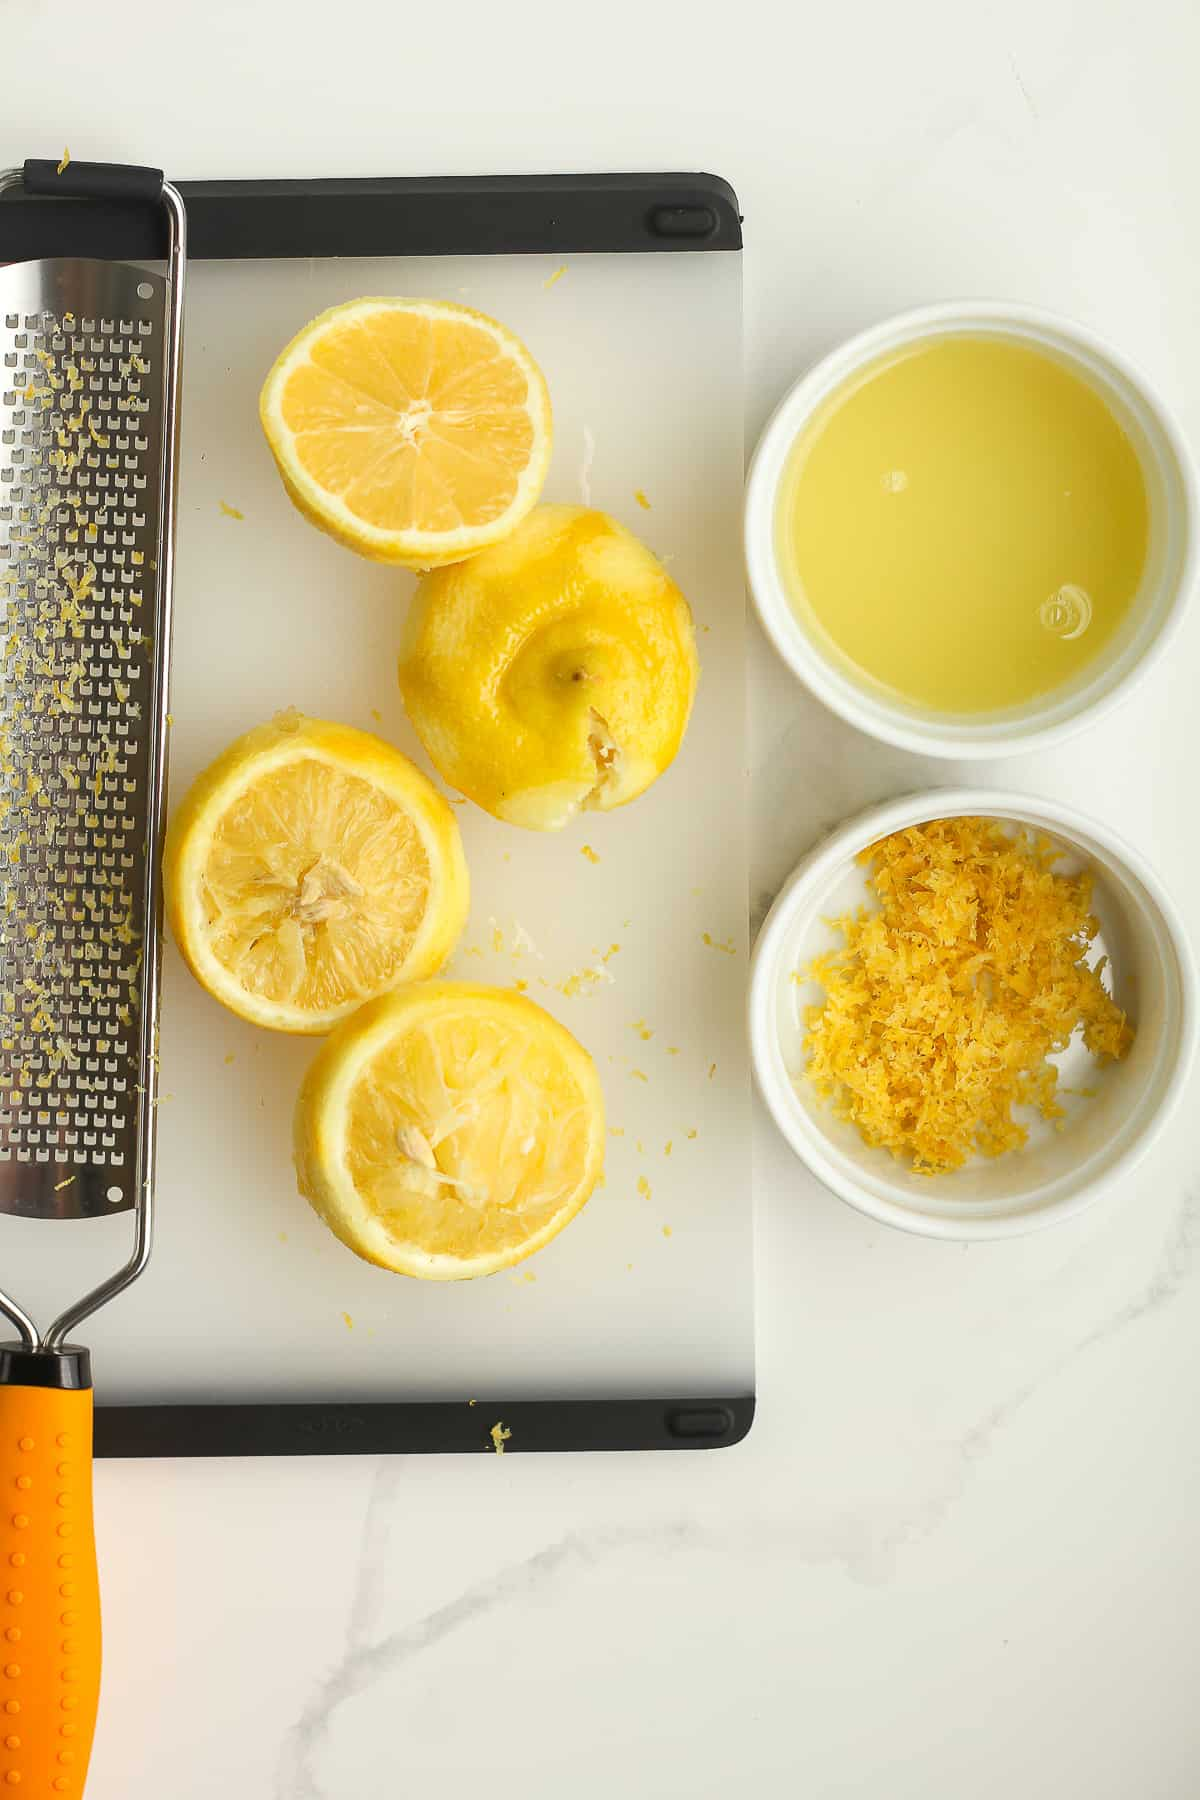 Some freshly squeezed lemons and zest.